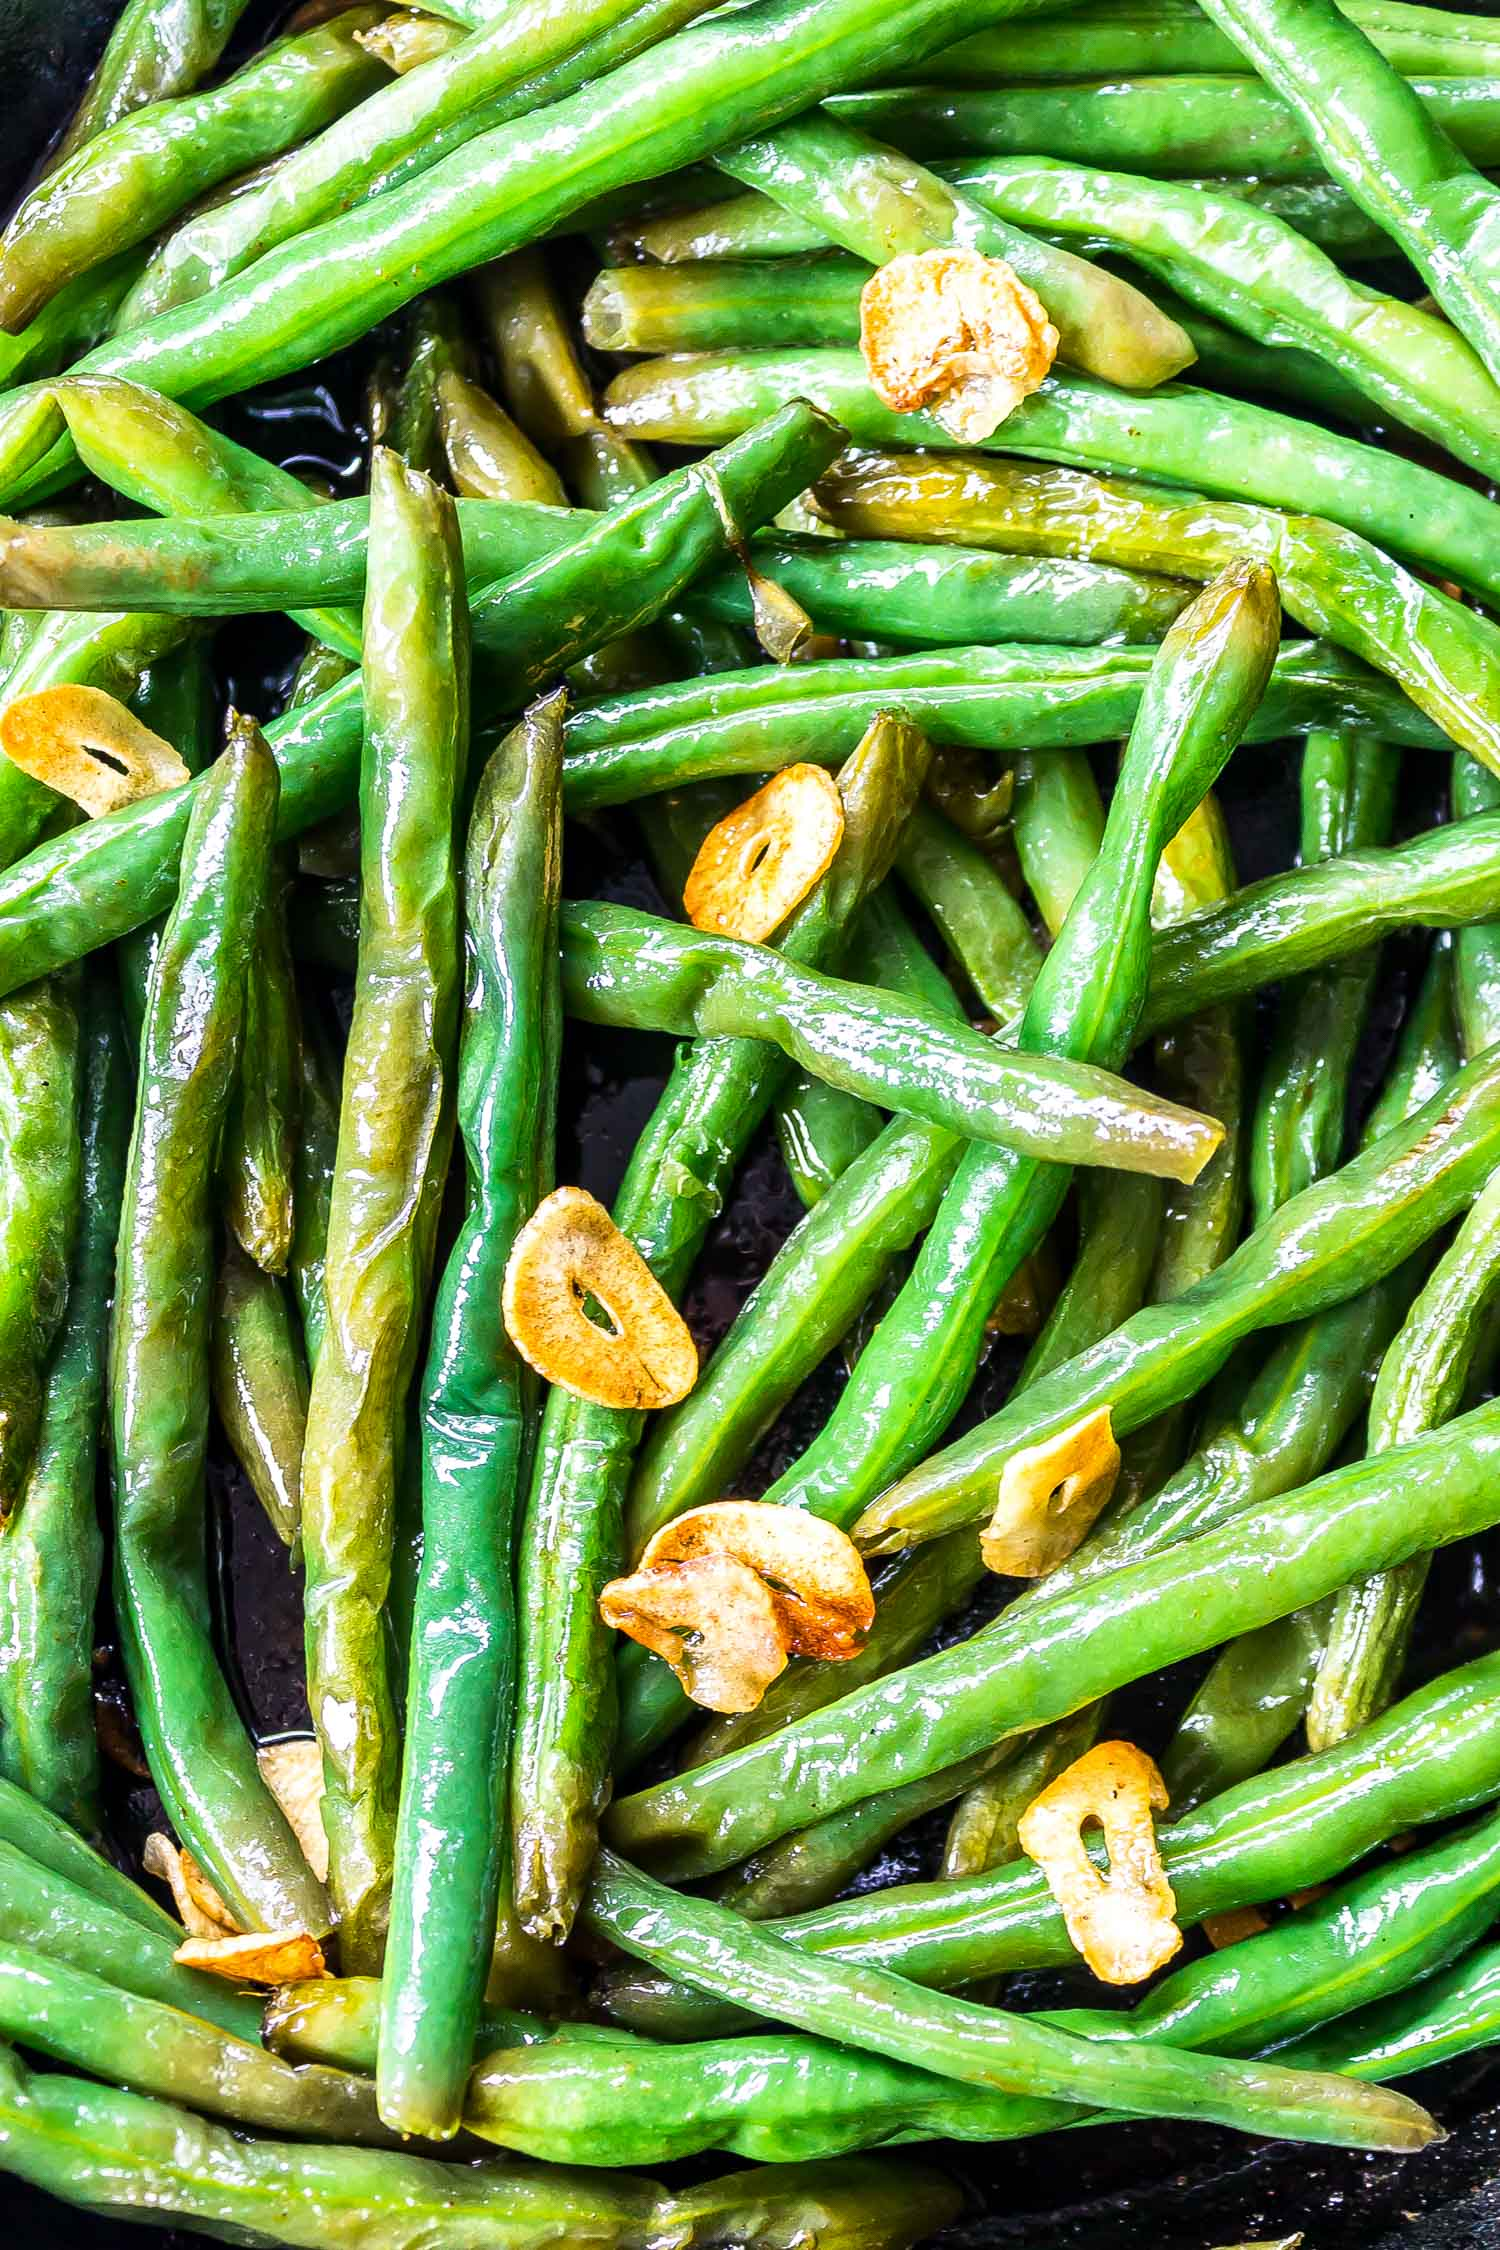 These Easy Garlic Butter Green Beans are packed with crispy garlic and make a great addition to any meal. They're low-carb, keto, gluten free, and super tasty! #glutenfree #keto #ketorecipe #ketorecipes #ketodiet #lchf #lowcarb #lowcarbrecipe #lowcarbrecipes #lowcarbdiet #ketosis #healthyrecipe #easyrecipe